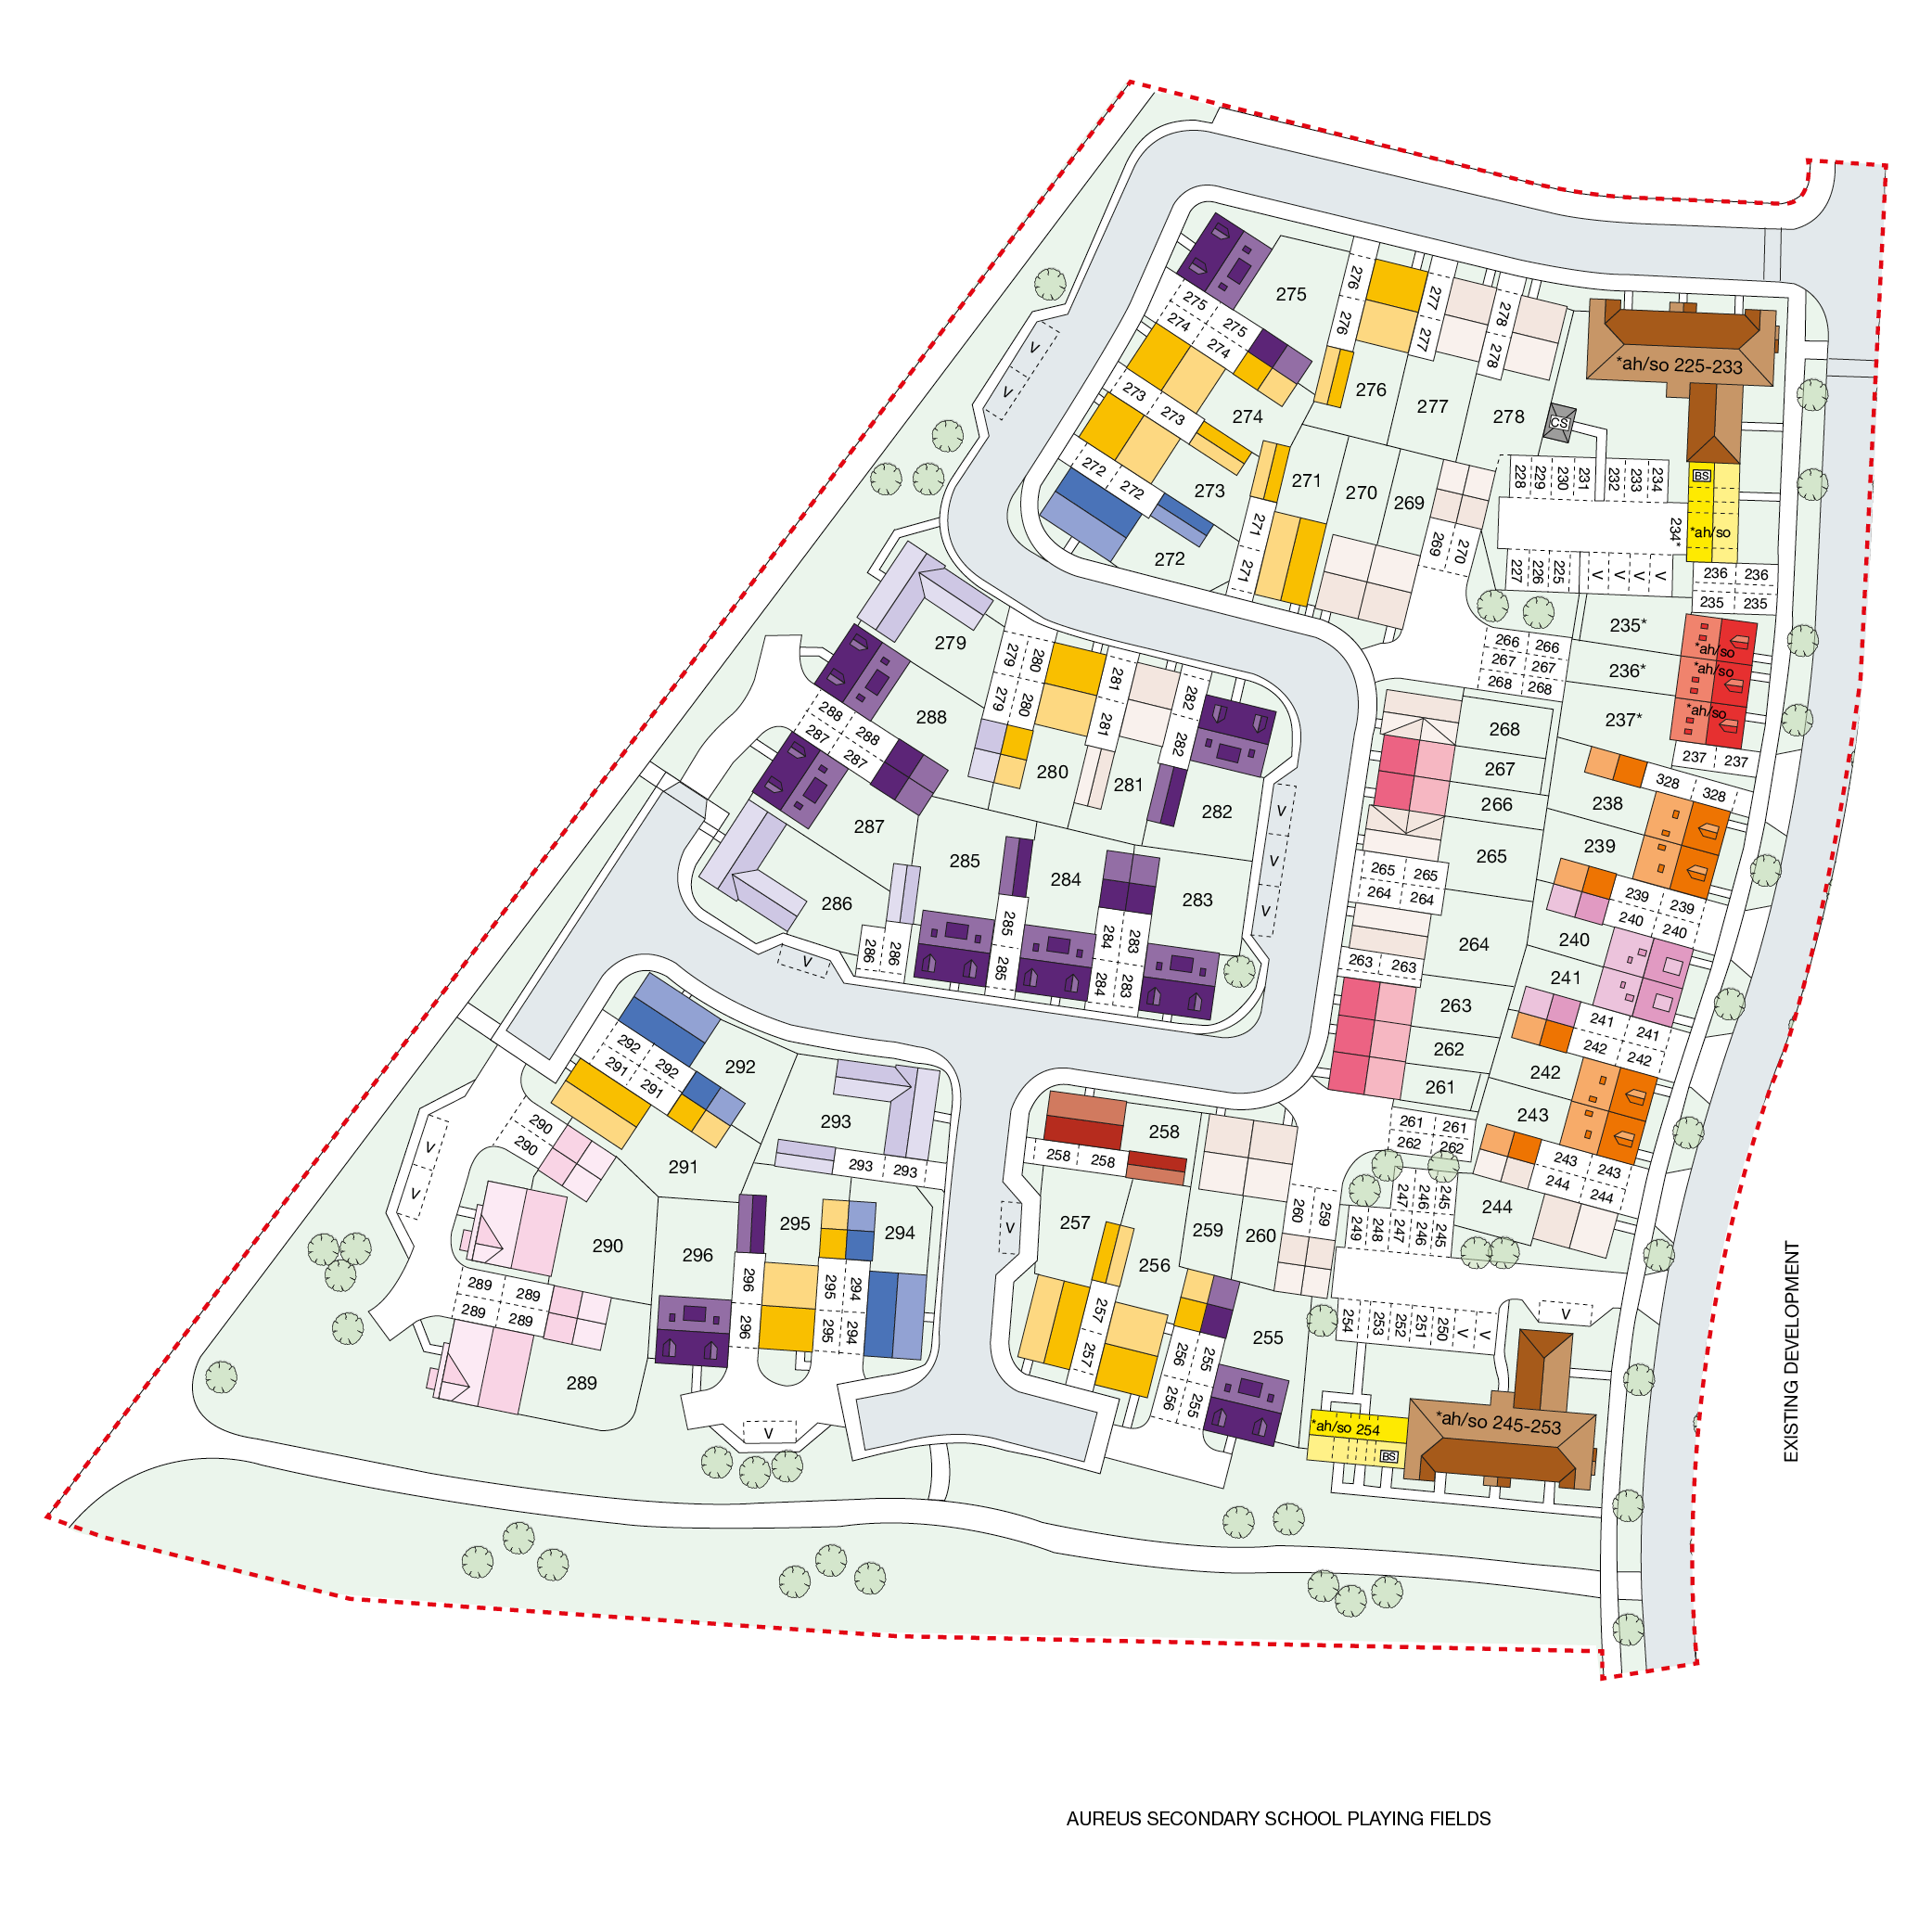 Emerald Quarter Site Plan